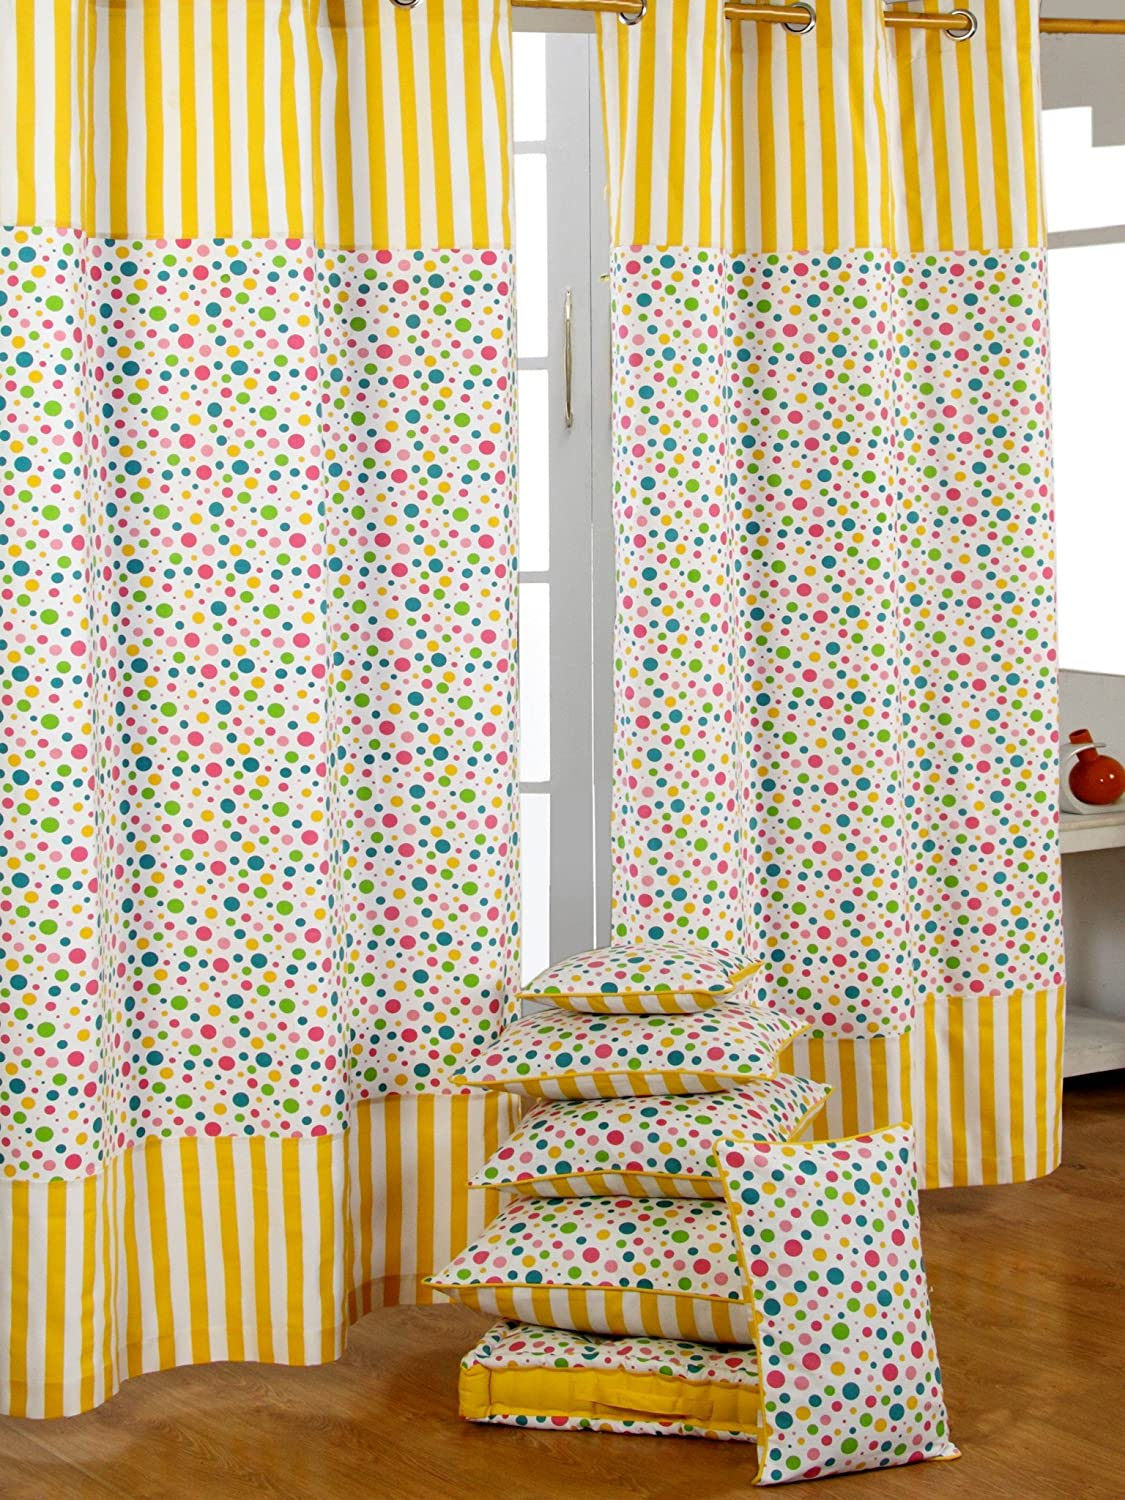 dp window cotton home pocket inch road of gray set kitchen zshl panels whitestone branches by dkny waj amazon floral white grey co uk curtains